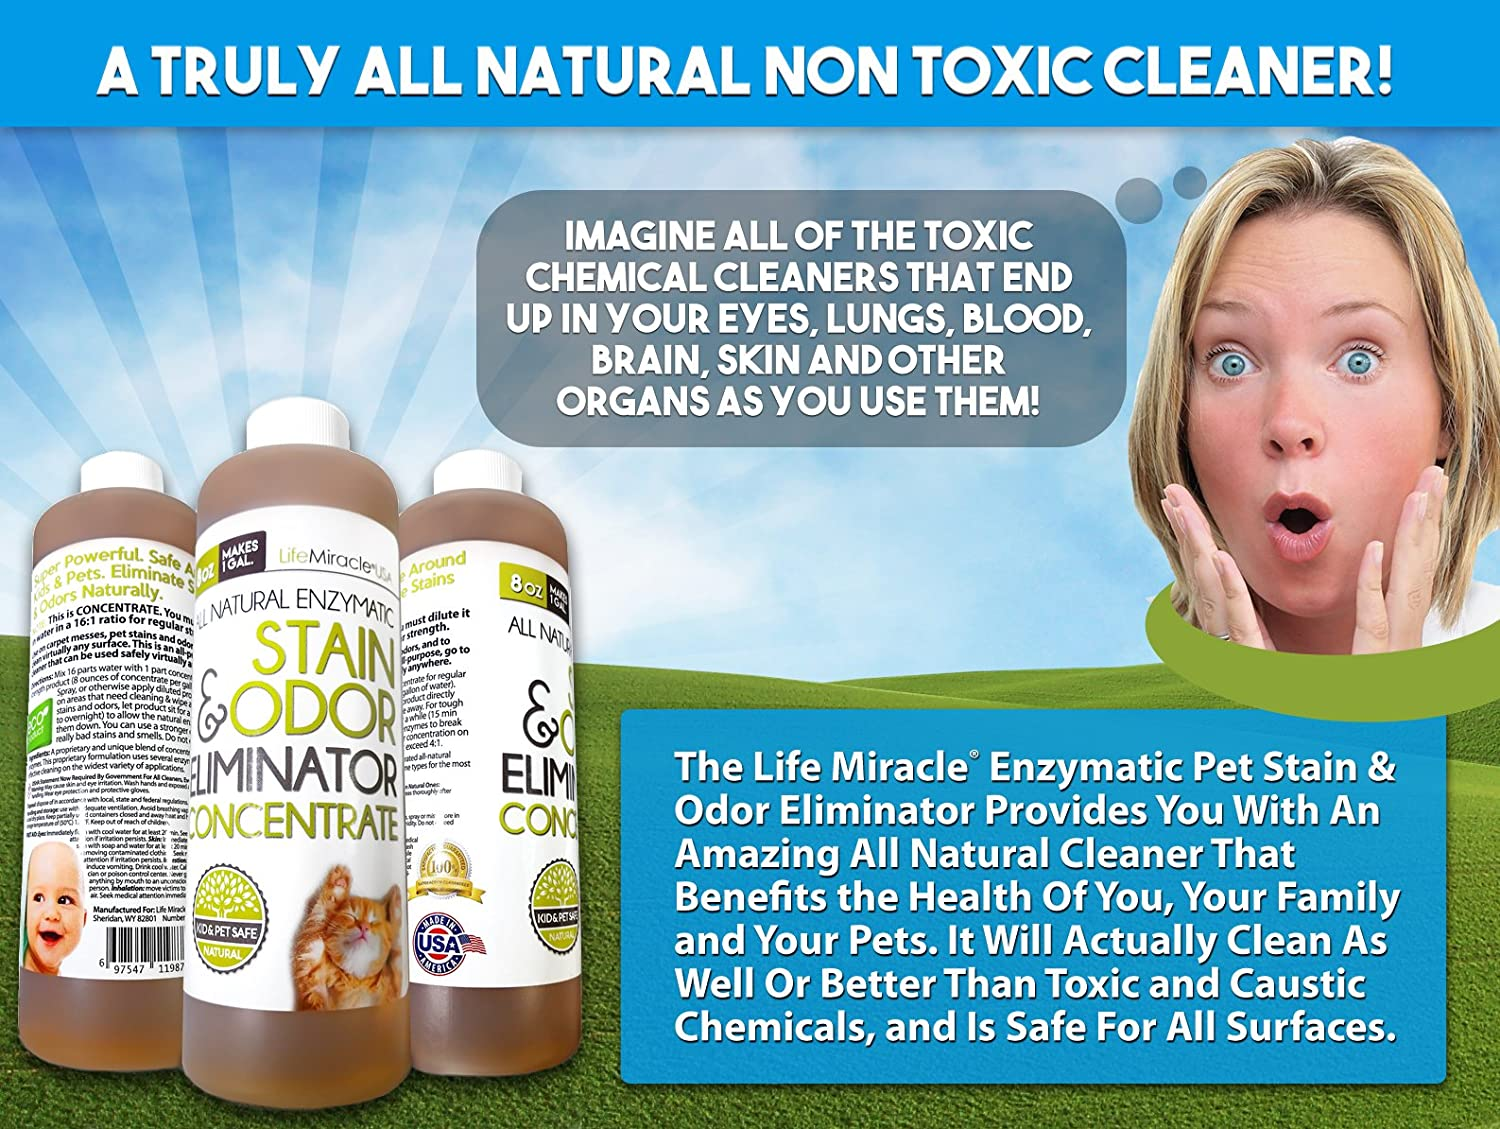 Safe, All Natural Carpet Cleaning And Laundry Stain Remover & Odor  Neutralizer All In One, All Surface Nontoxic Cleaner Concentrate Makes A  Gallon (128